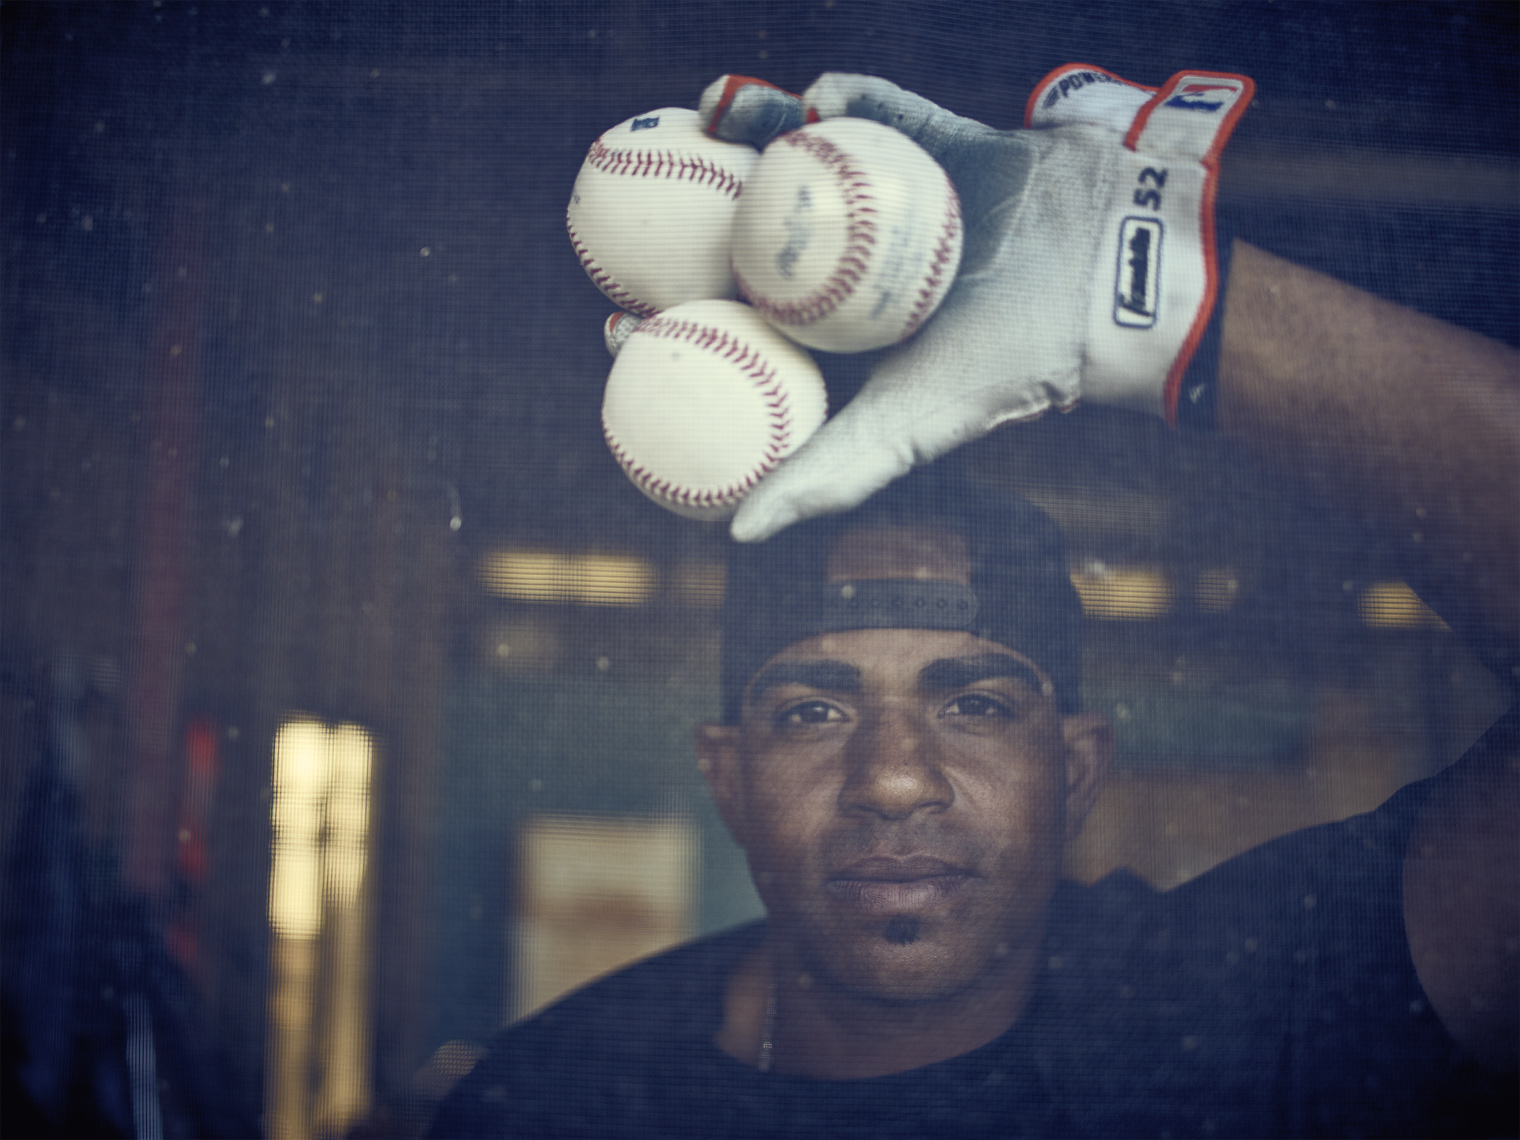 Yoenis Cespedes | Baseball Player